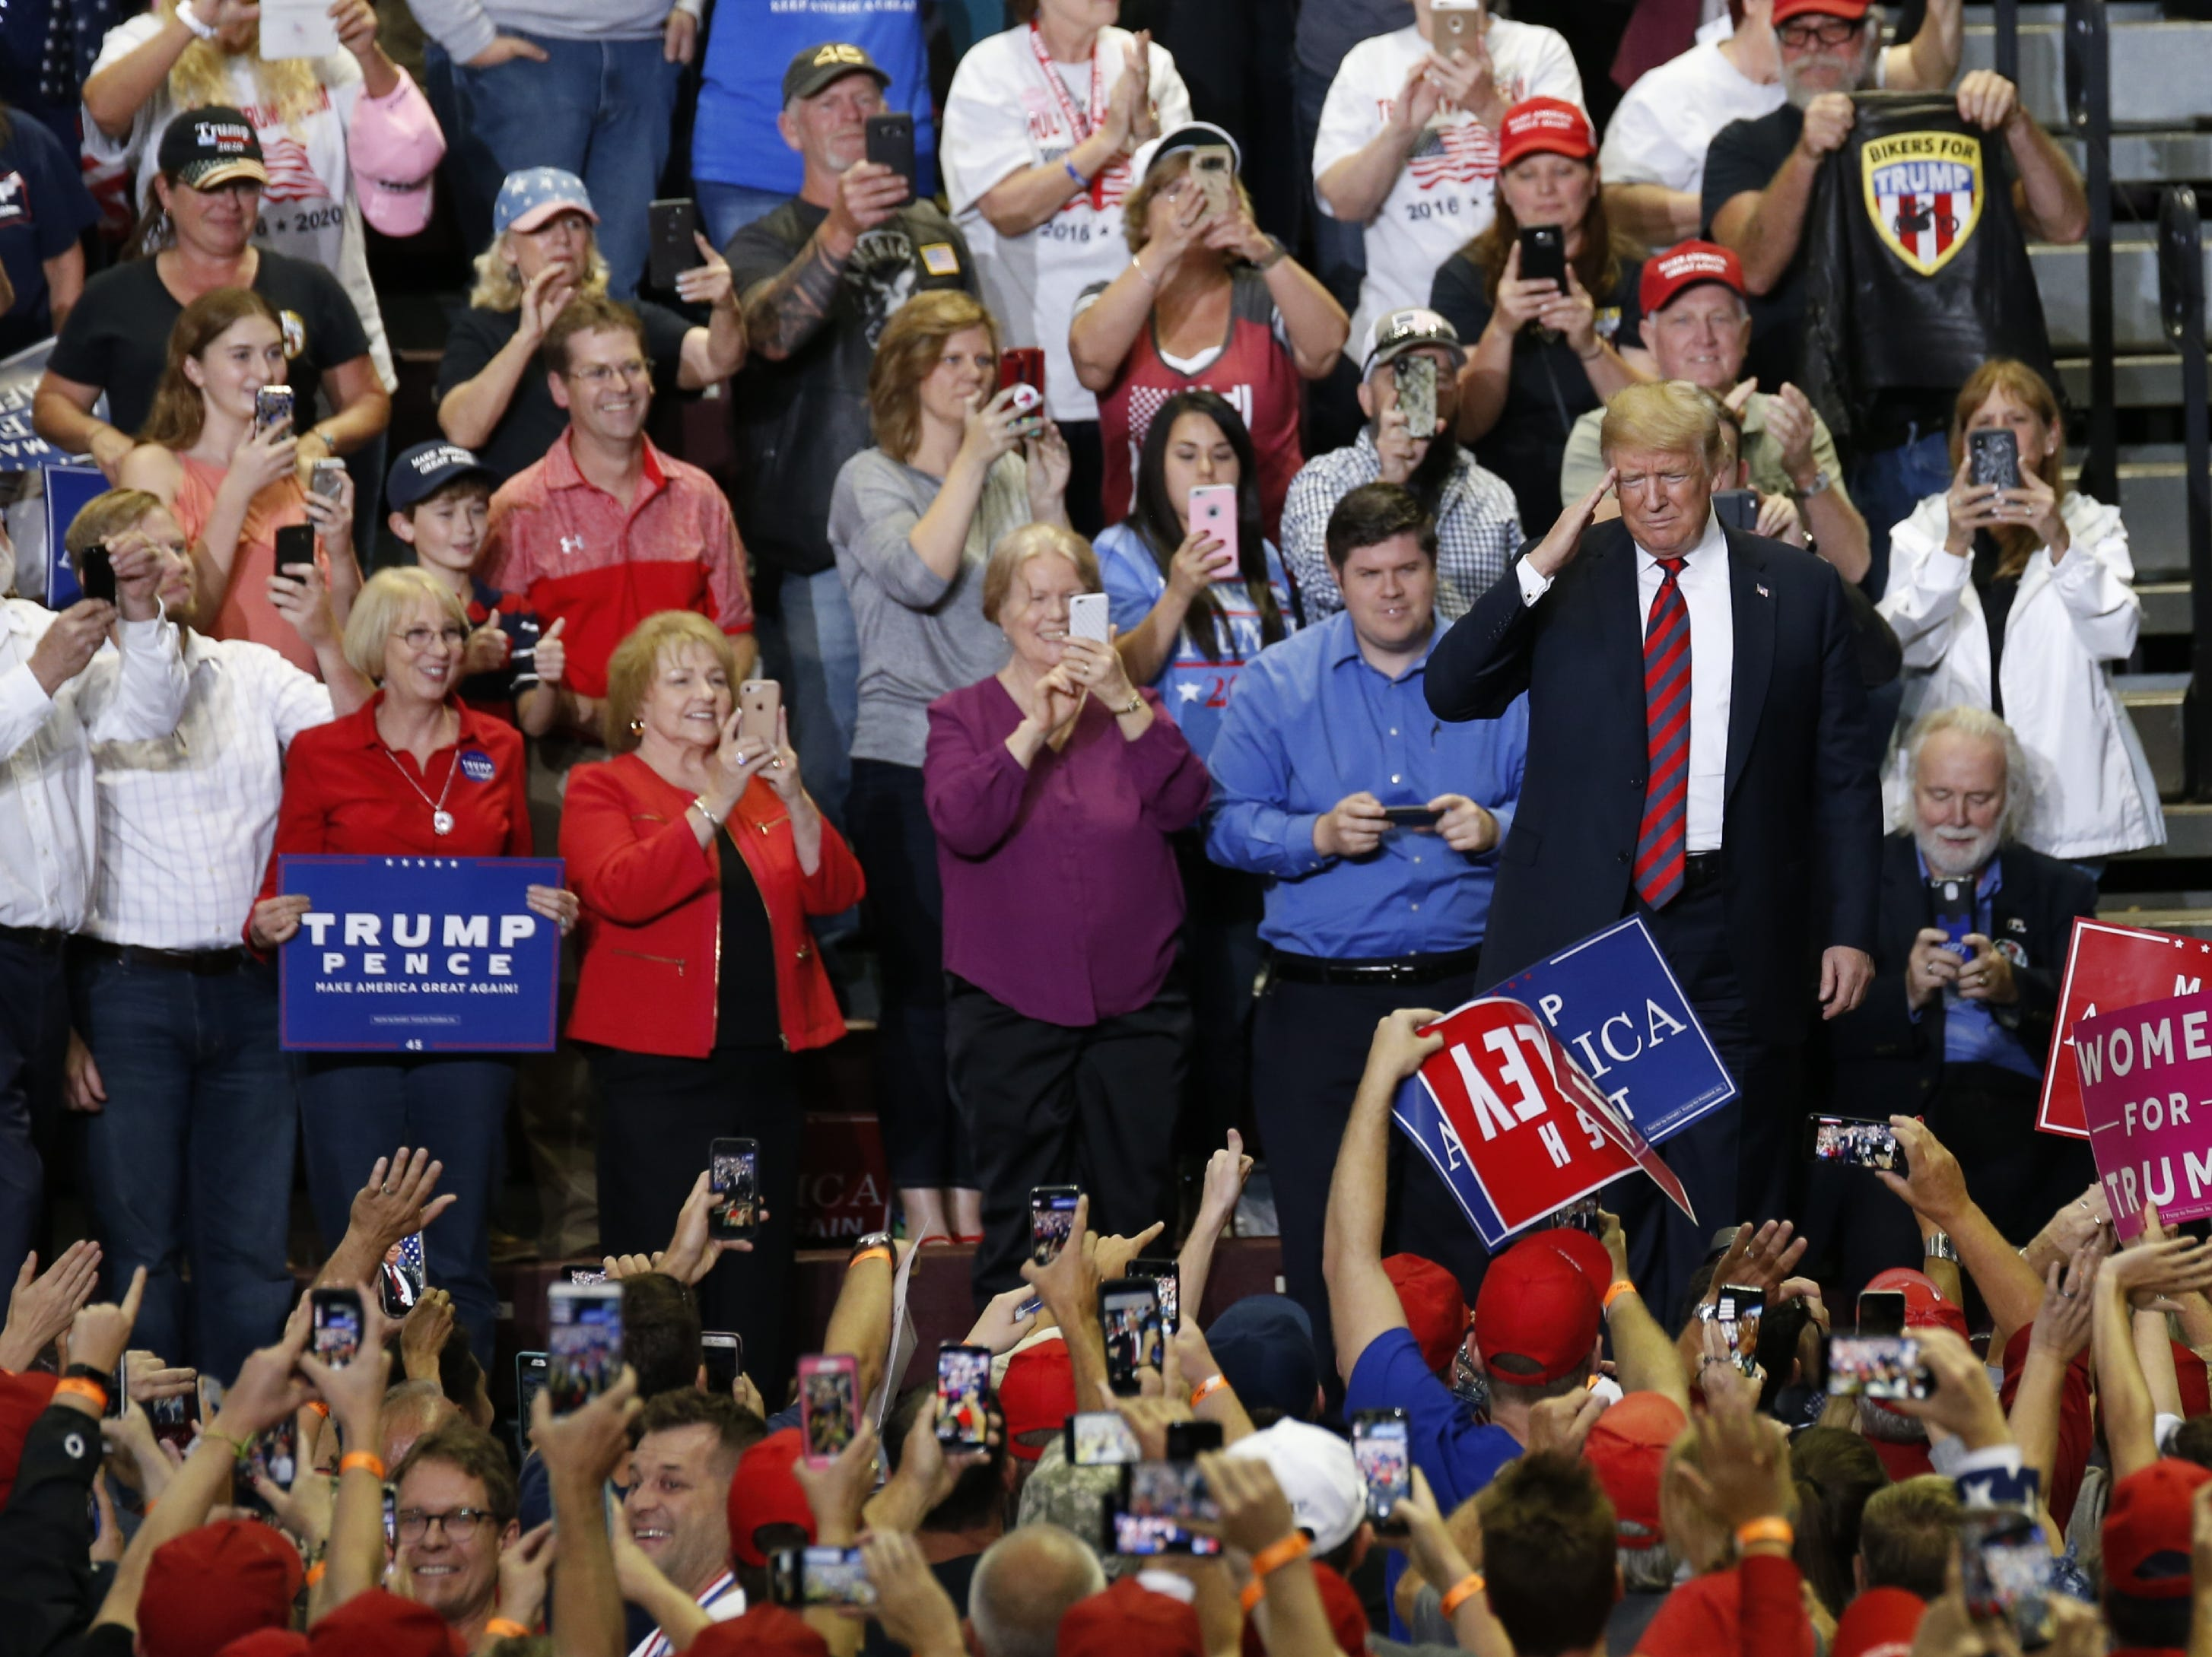 President Trump and supporters Friday at JQH Arena during his rally in Springfield on Friday, Sept. 21, 2018.